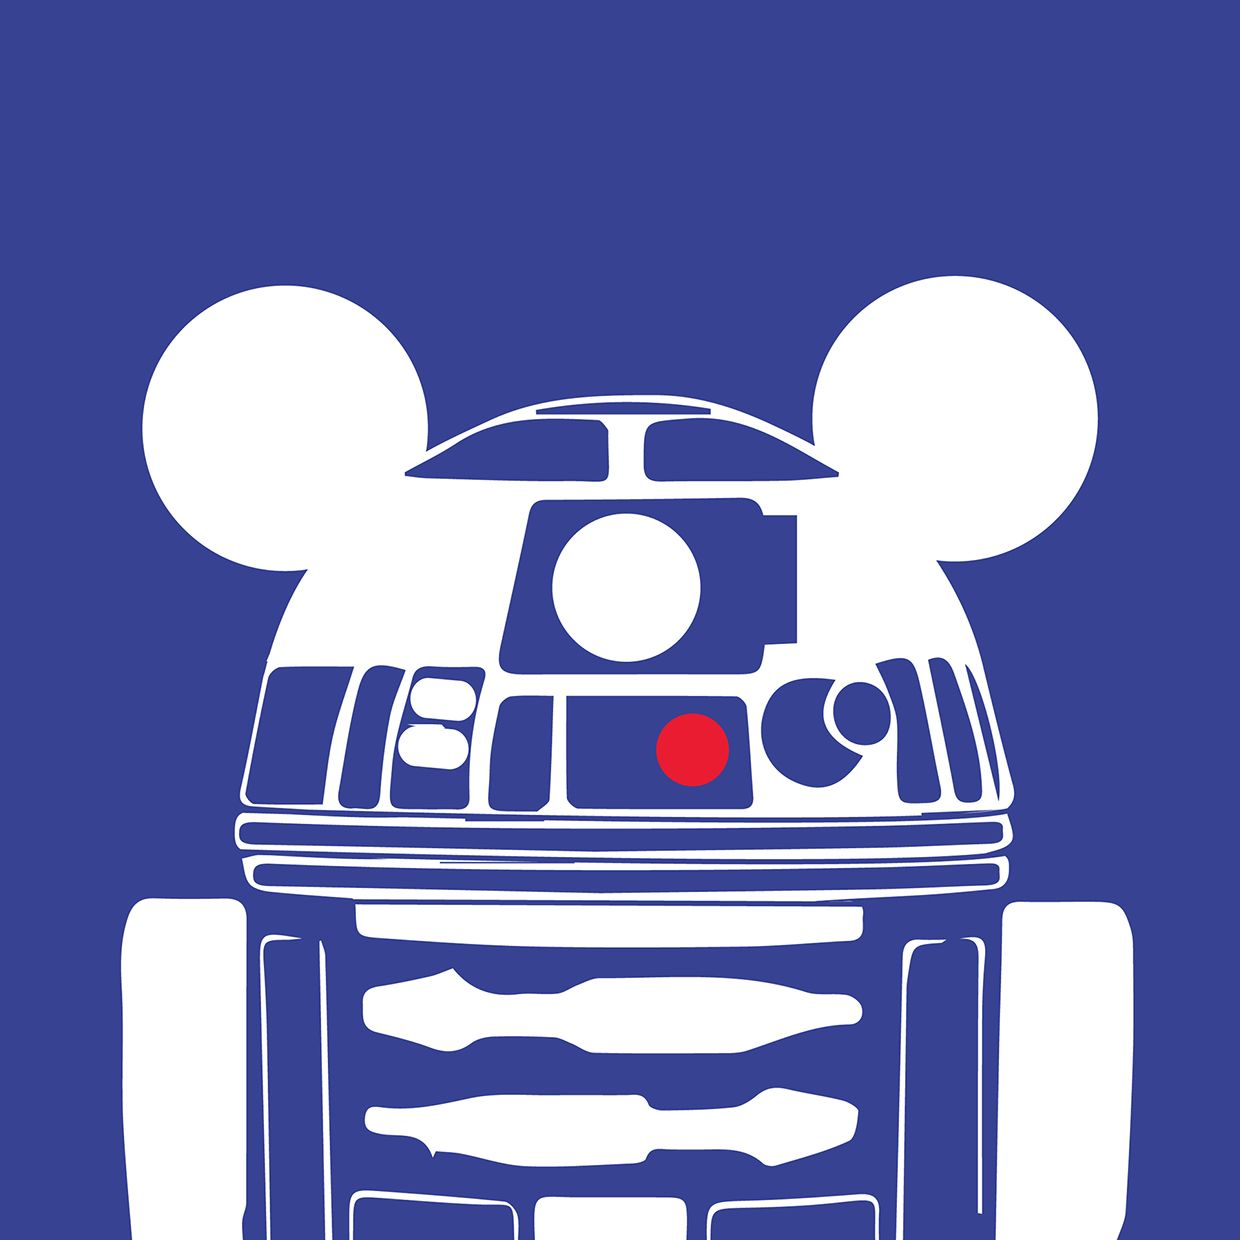 Mickey Mouse Star Wars Wallpapers Top Free Mickey Mouse Star Wars Backgrounds Wallpaperaccess